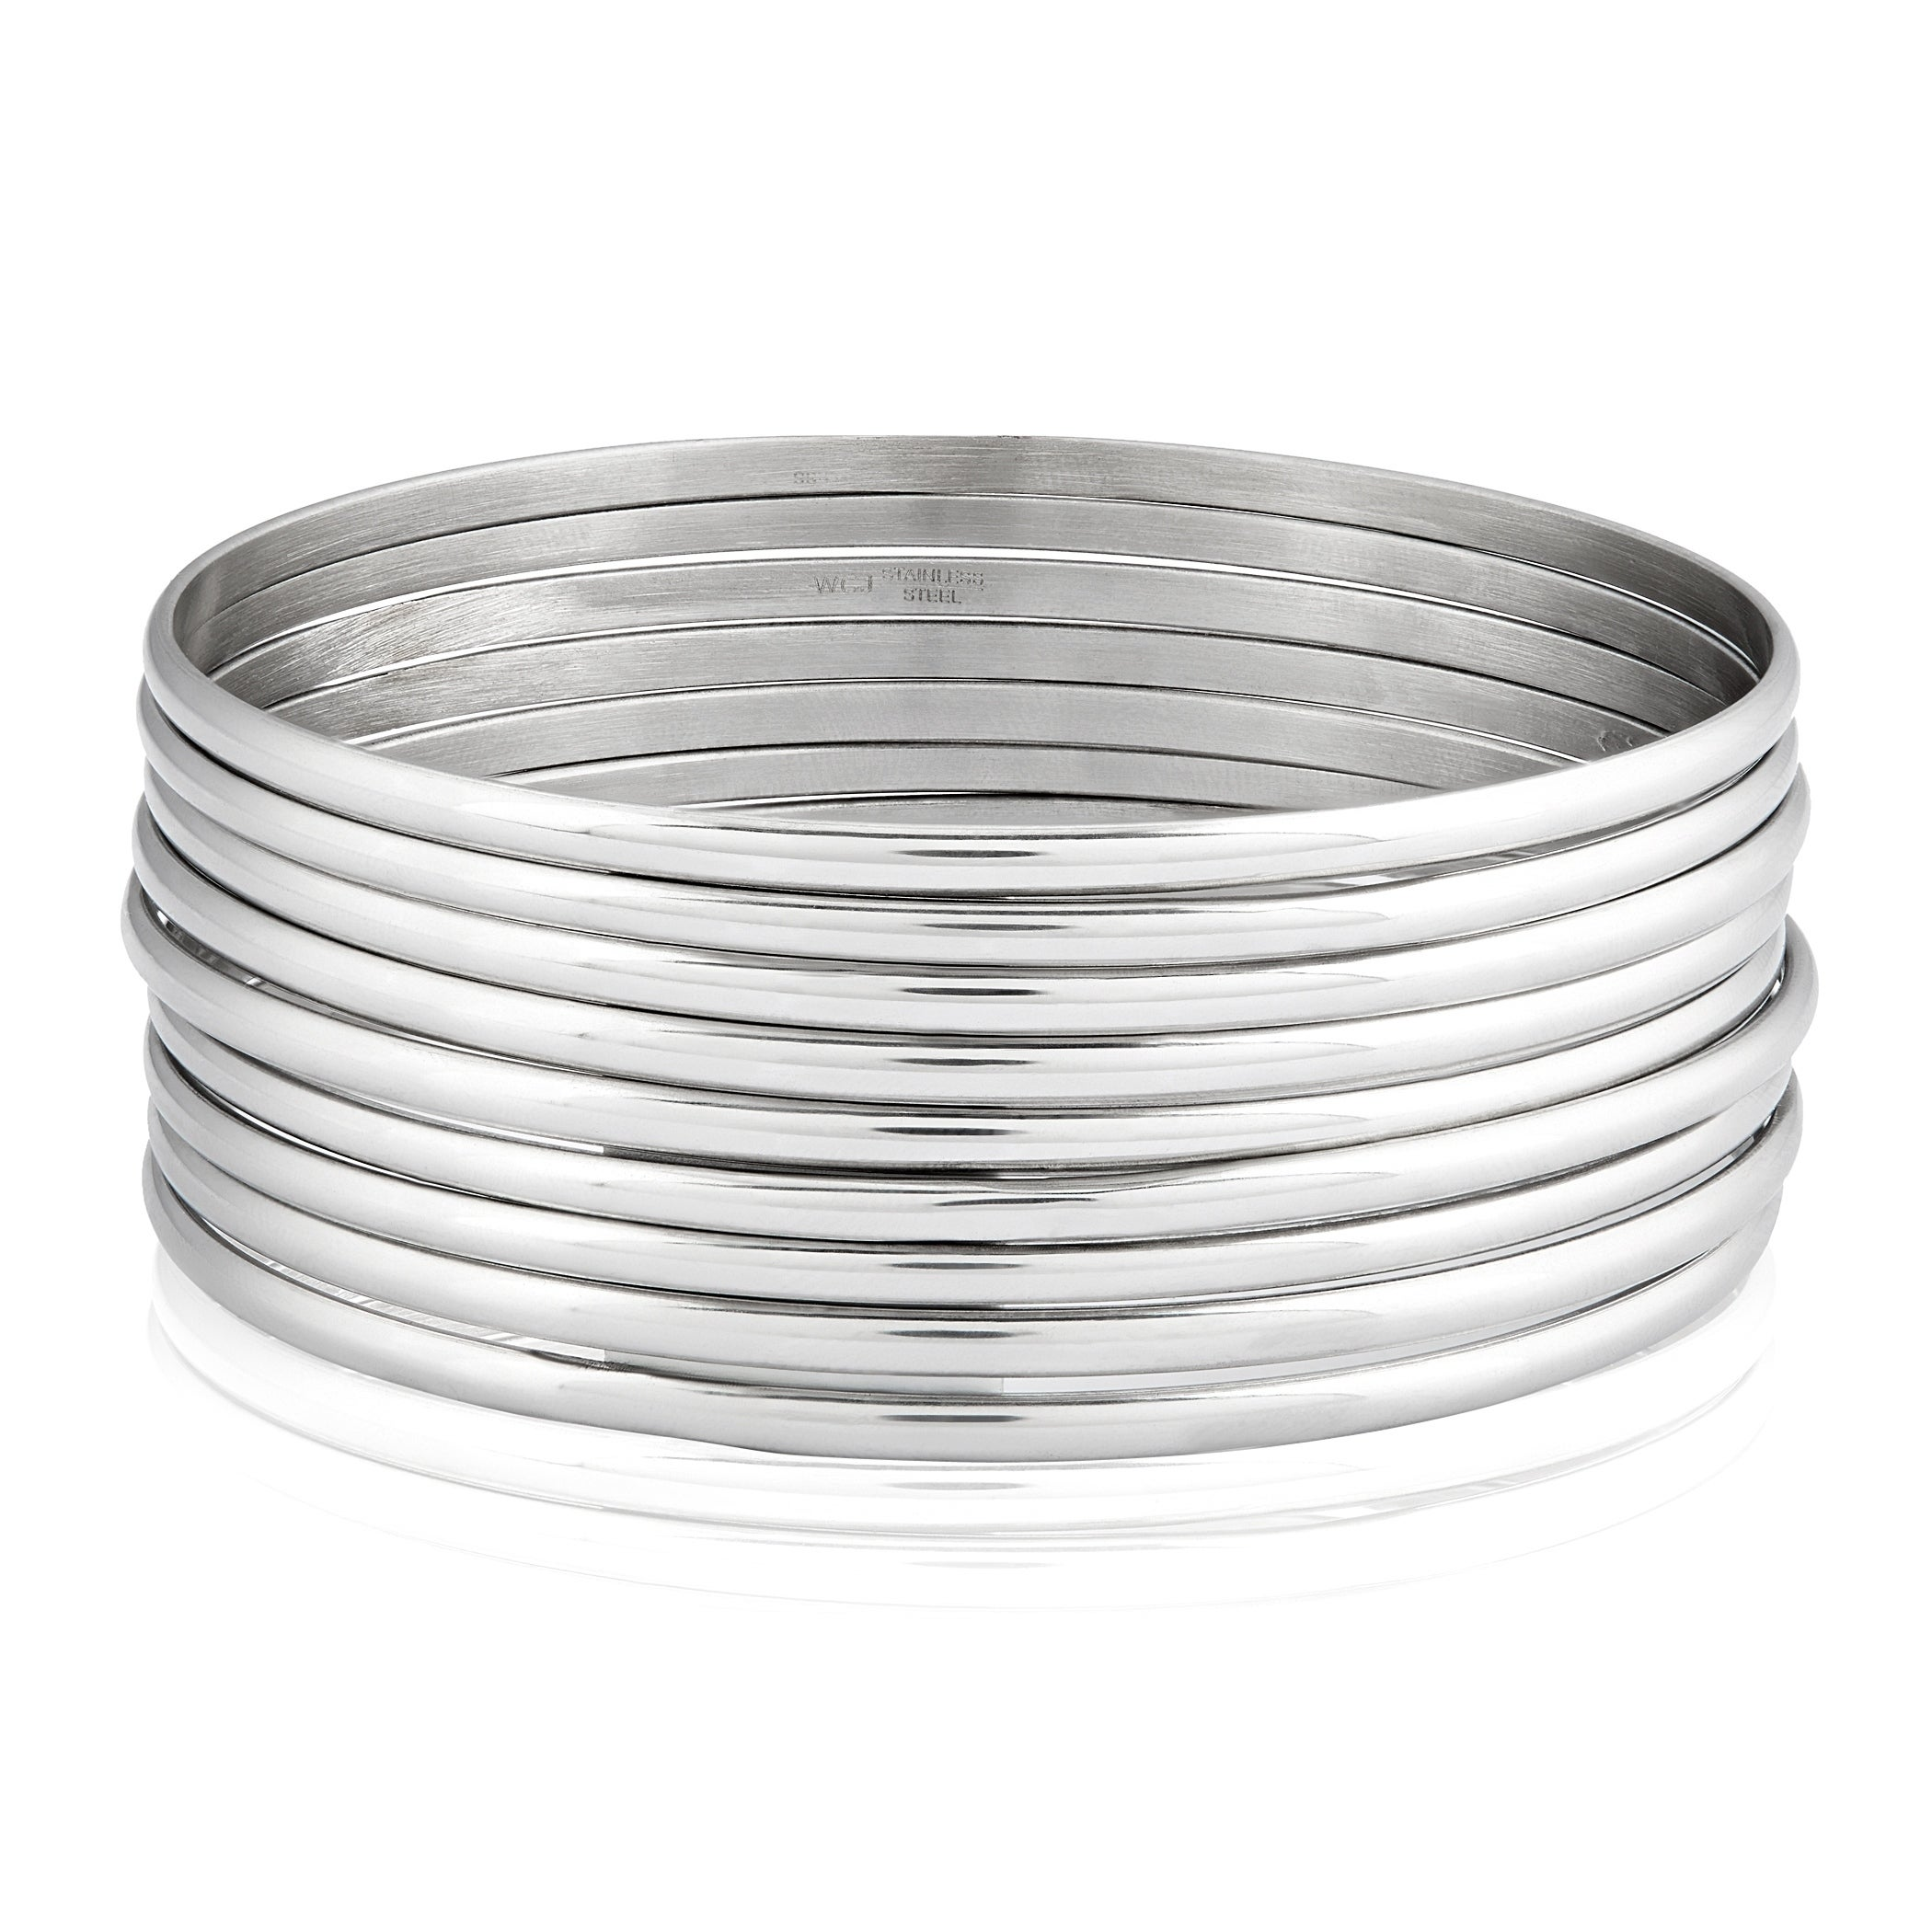 Women S Stainless Steel 9 Piece Stackable Bangle Bracelets On Free Shipping Orders Over 45 10569847